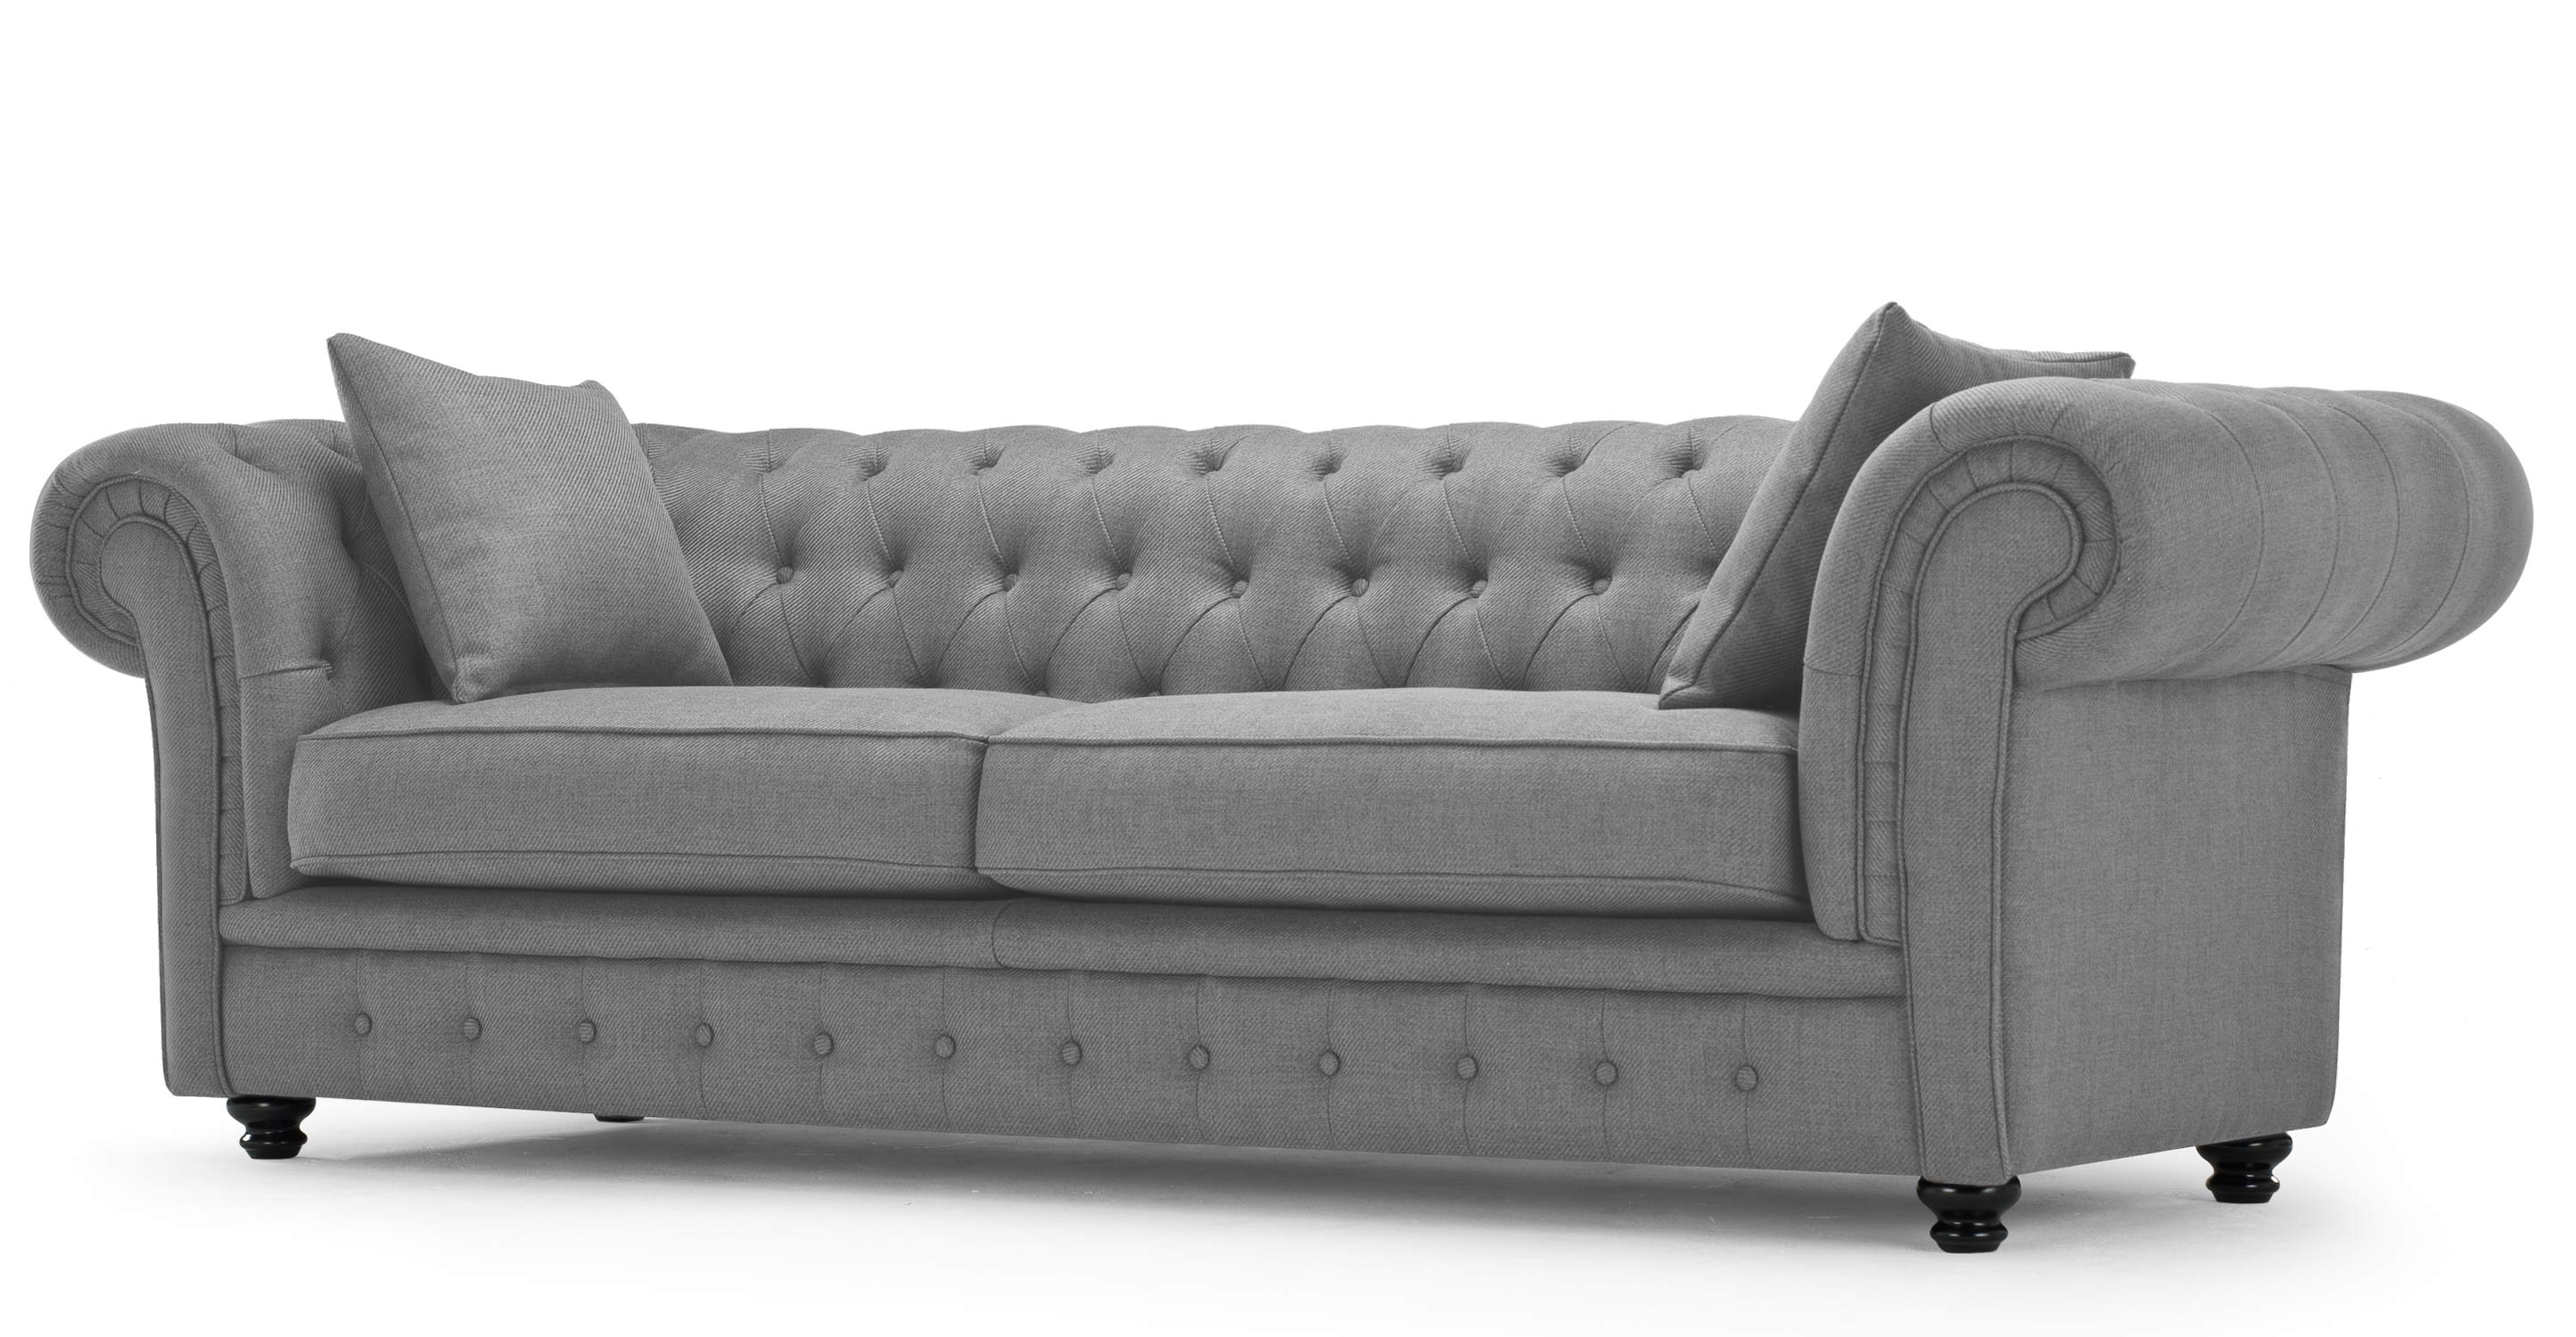 Branagh 3 Seater Grey Chesterfield Sofa Chesterfield Sofa Pearl With Regard To Chesterfield Sofa And Chair (View 10 of 15)